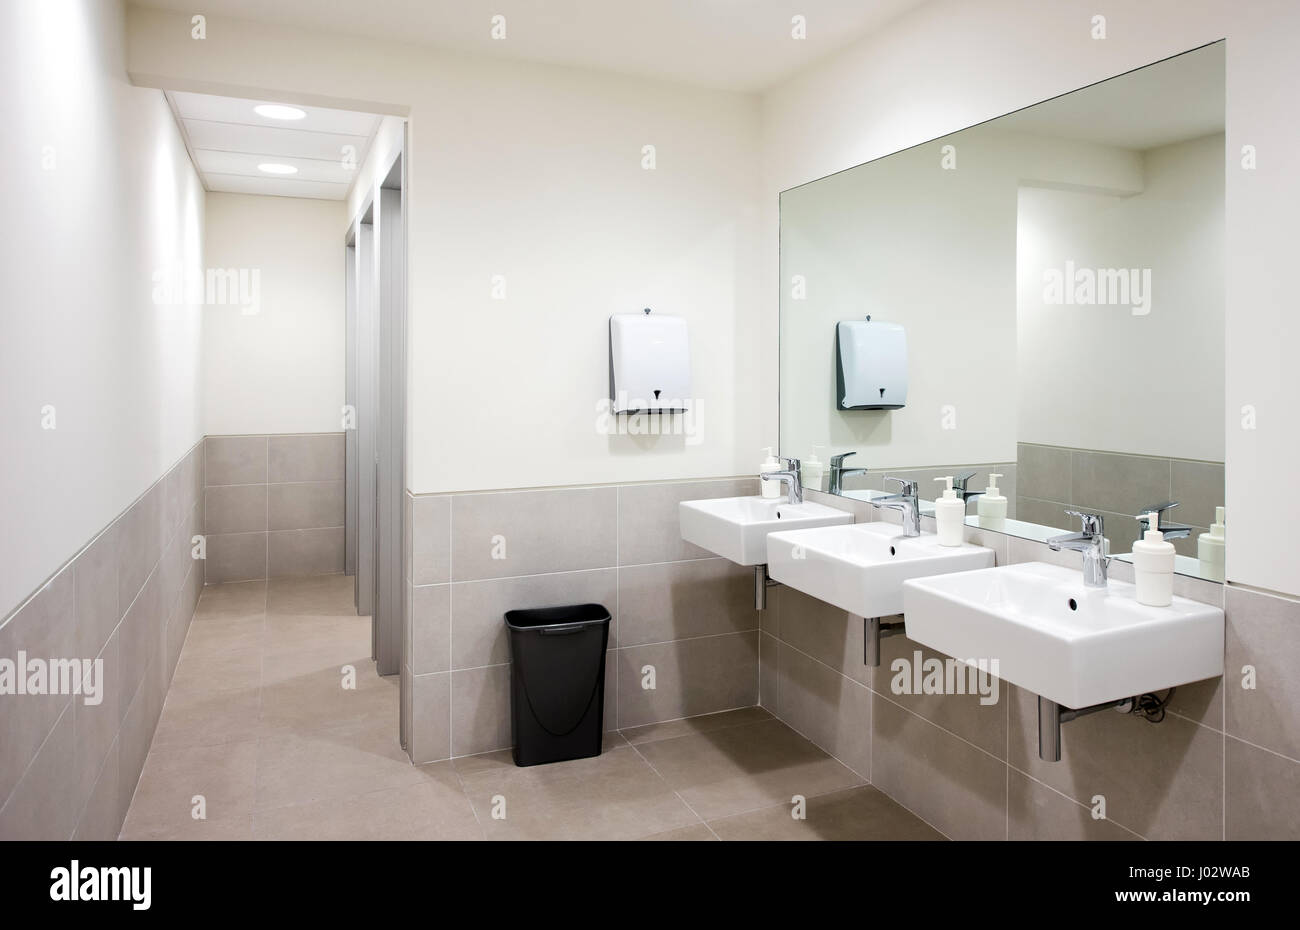 Empty public bathroom with white sinks and wide wall mirror, air ...